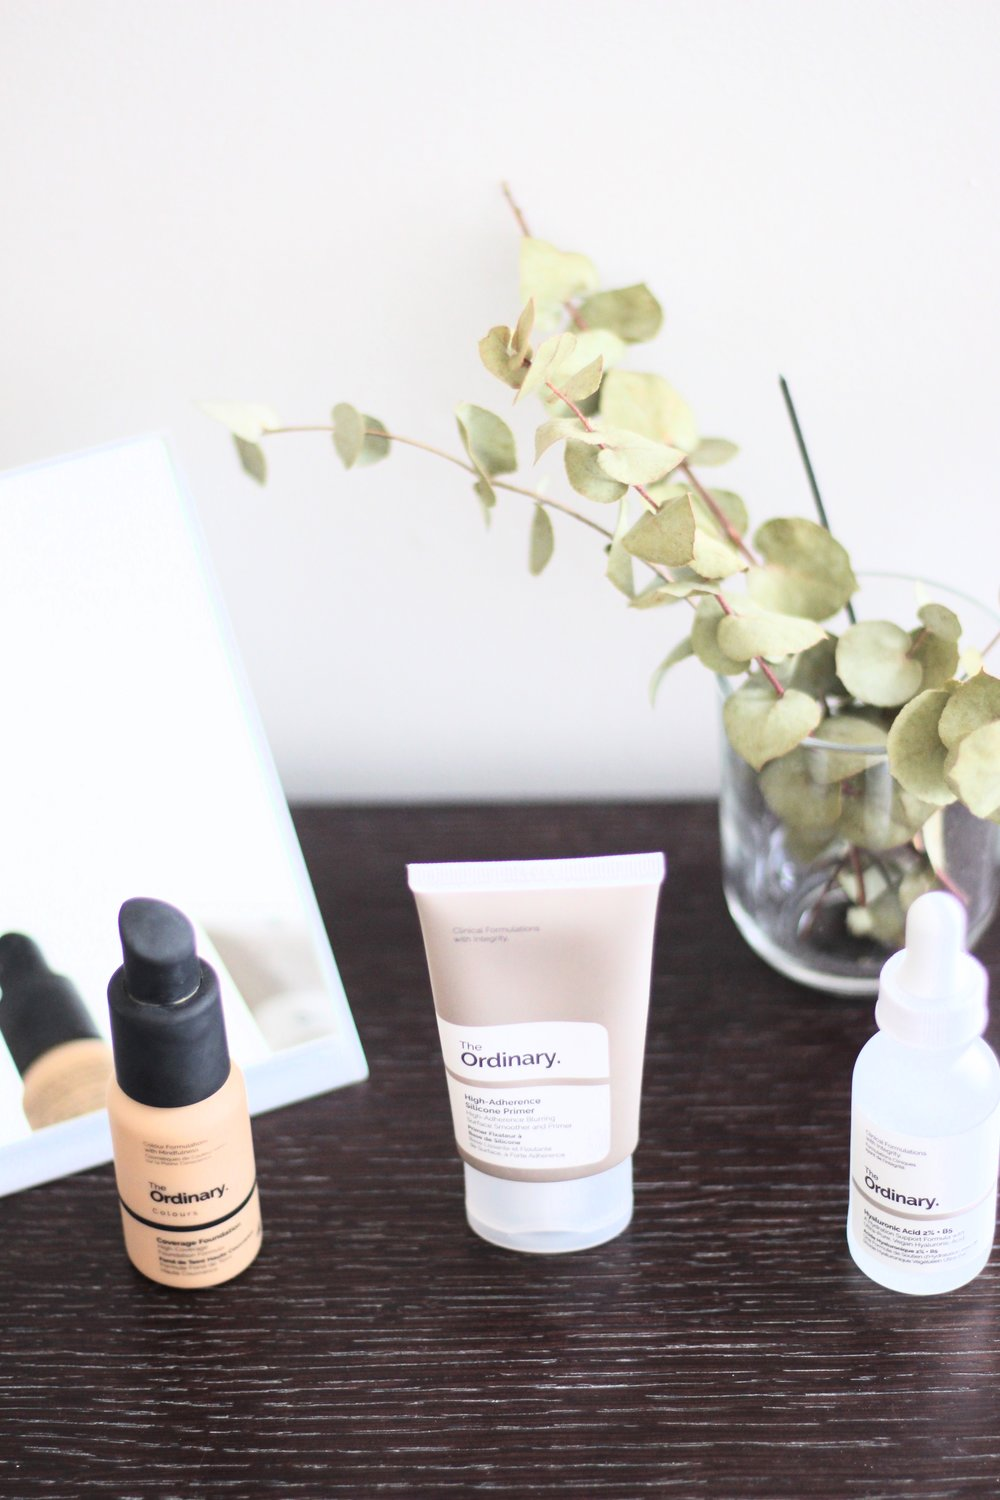 A Simple Review Of The Ordinary